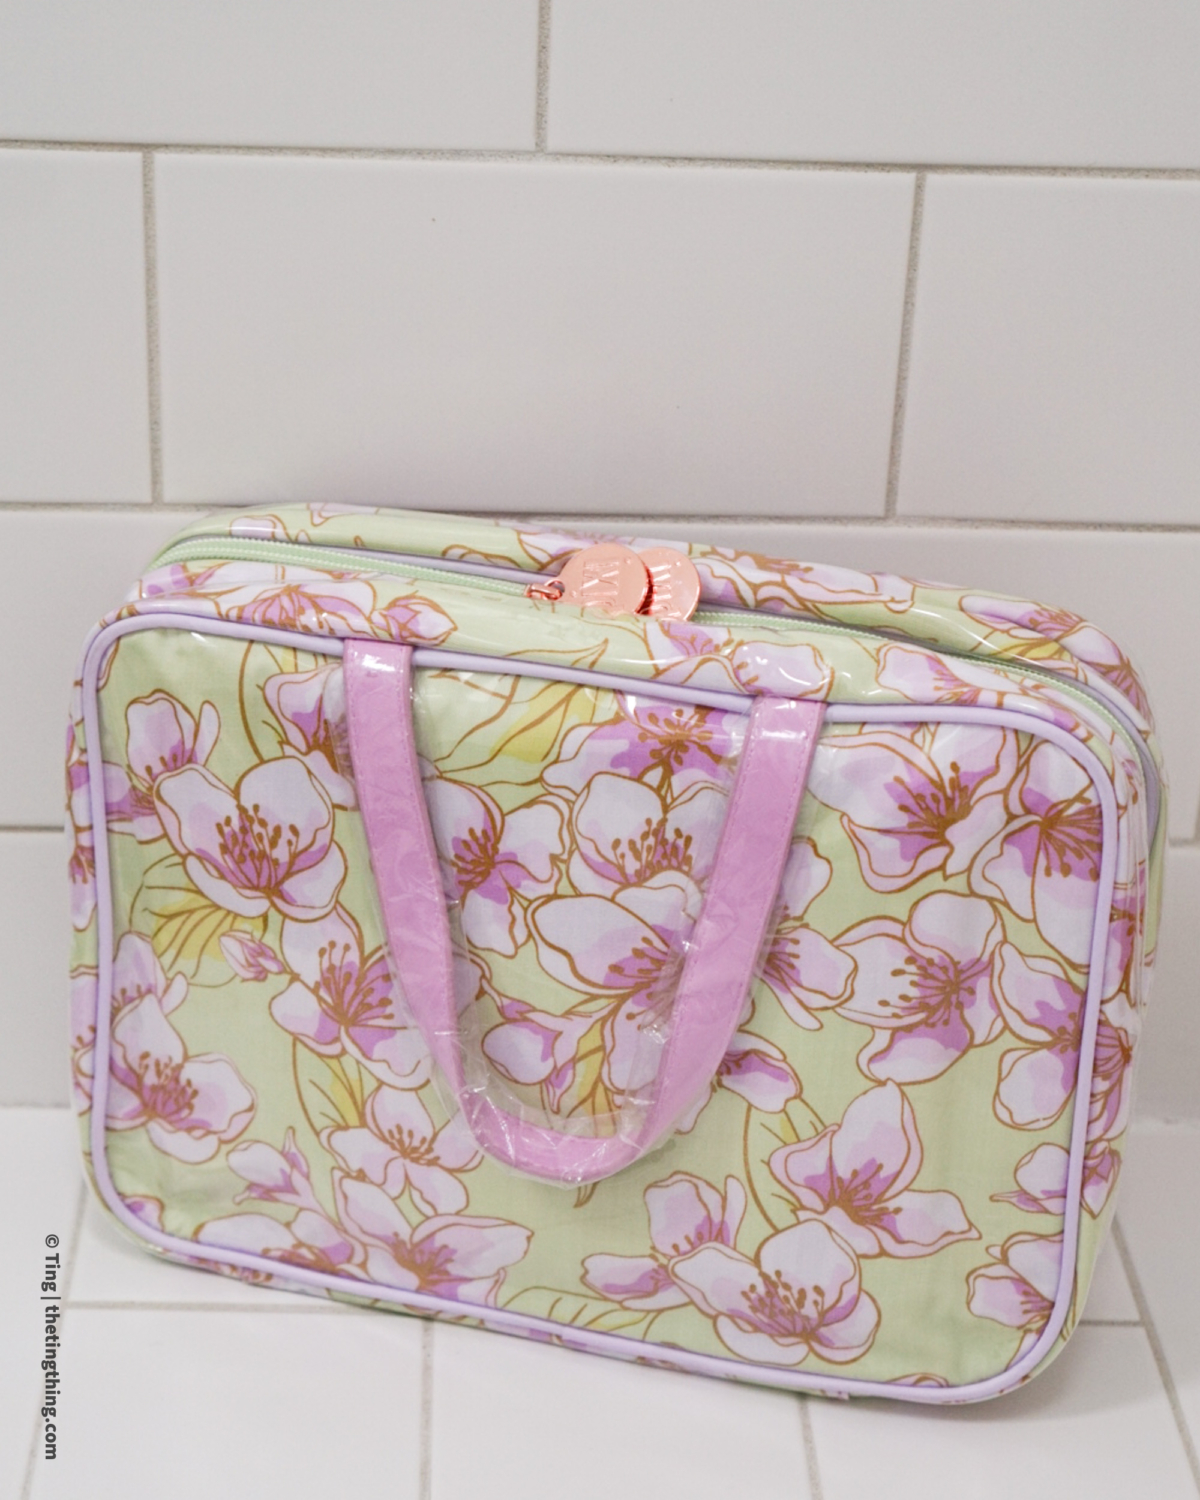 A Pixi Beauty toiletry bag in a pastel lilac and green floral design is sat on a white tiled bathroom counter.